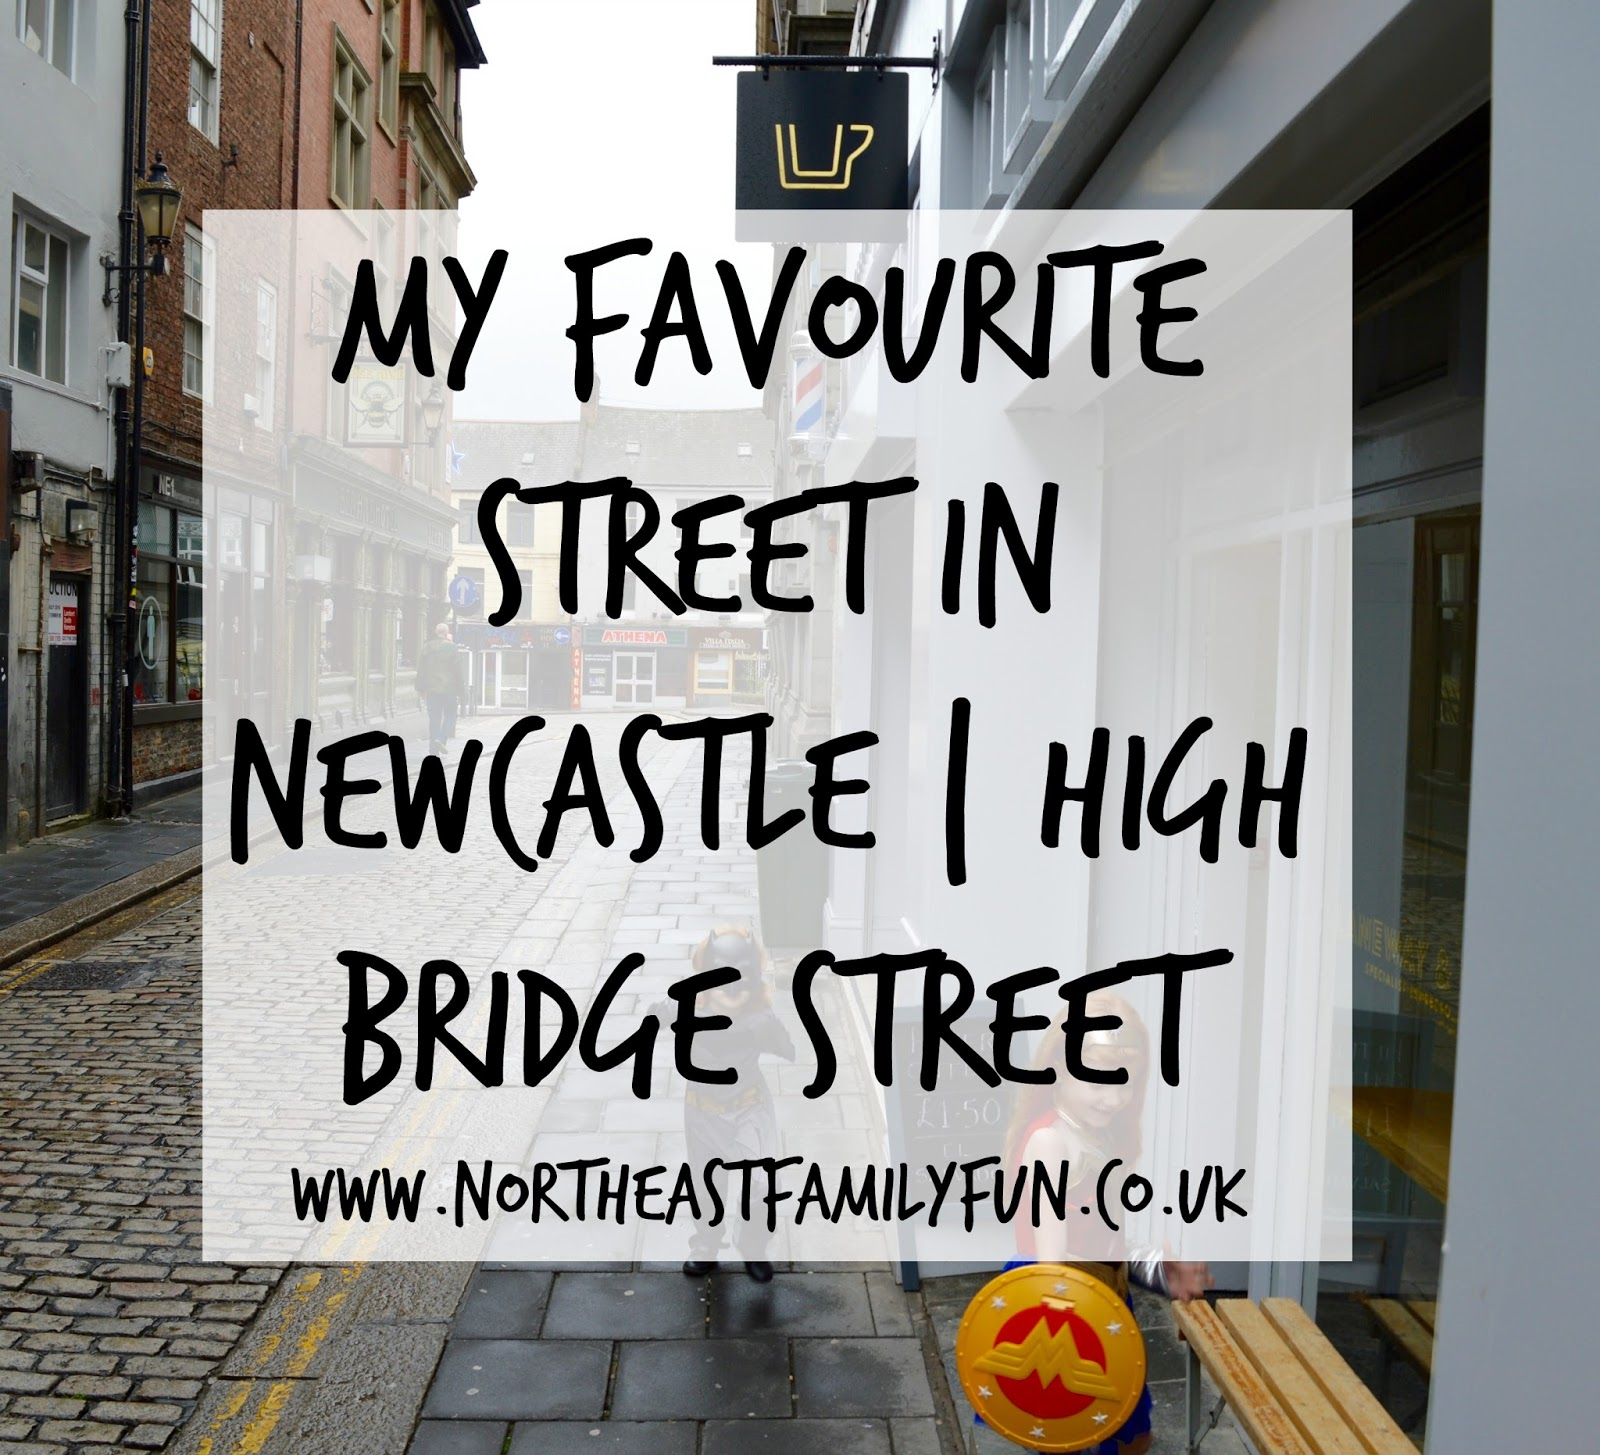 My Favourite Street in Newcastle | High Bridge Street